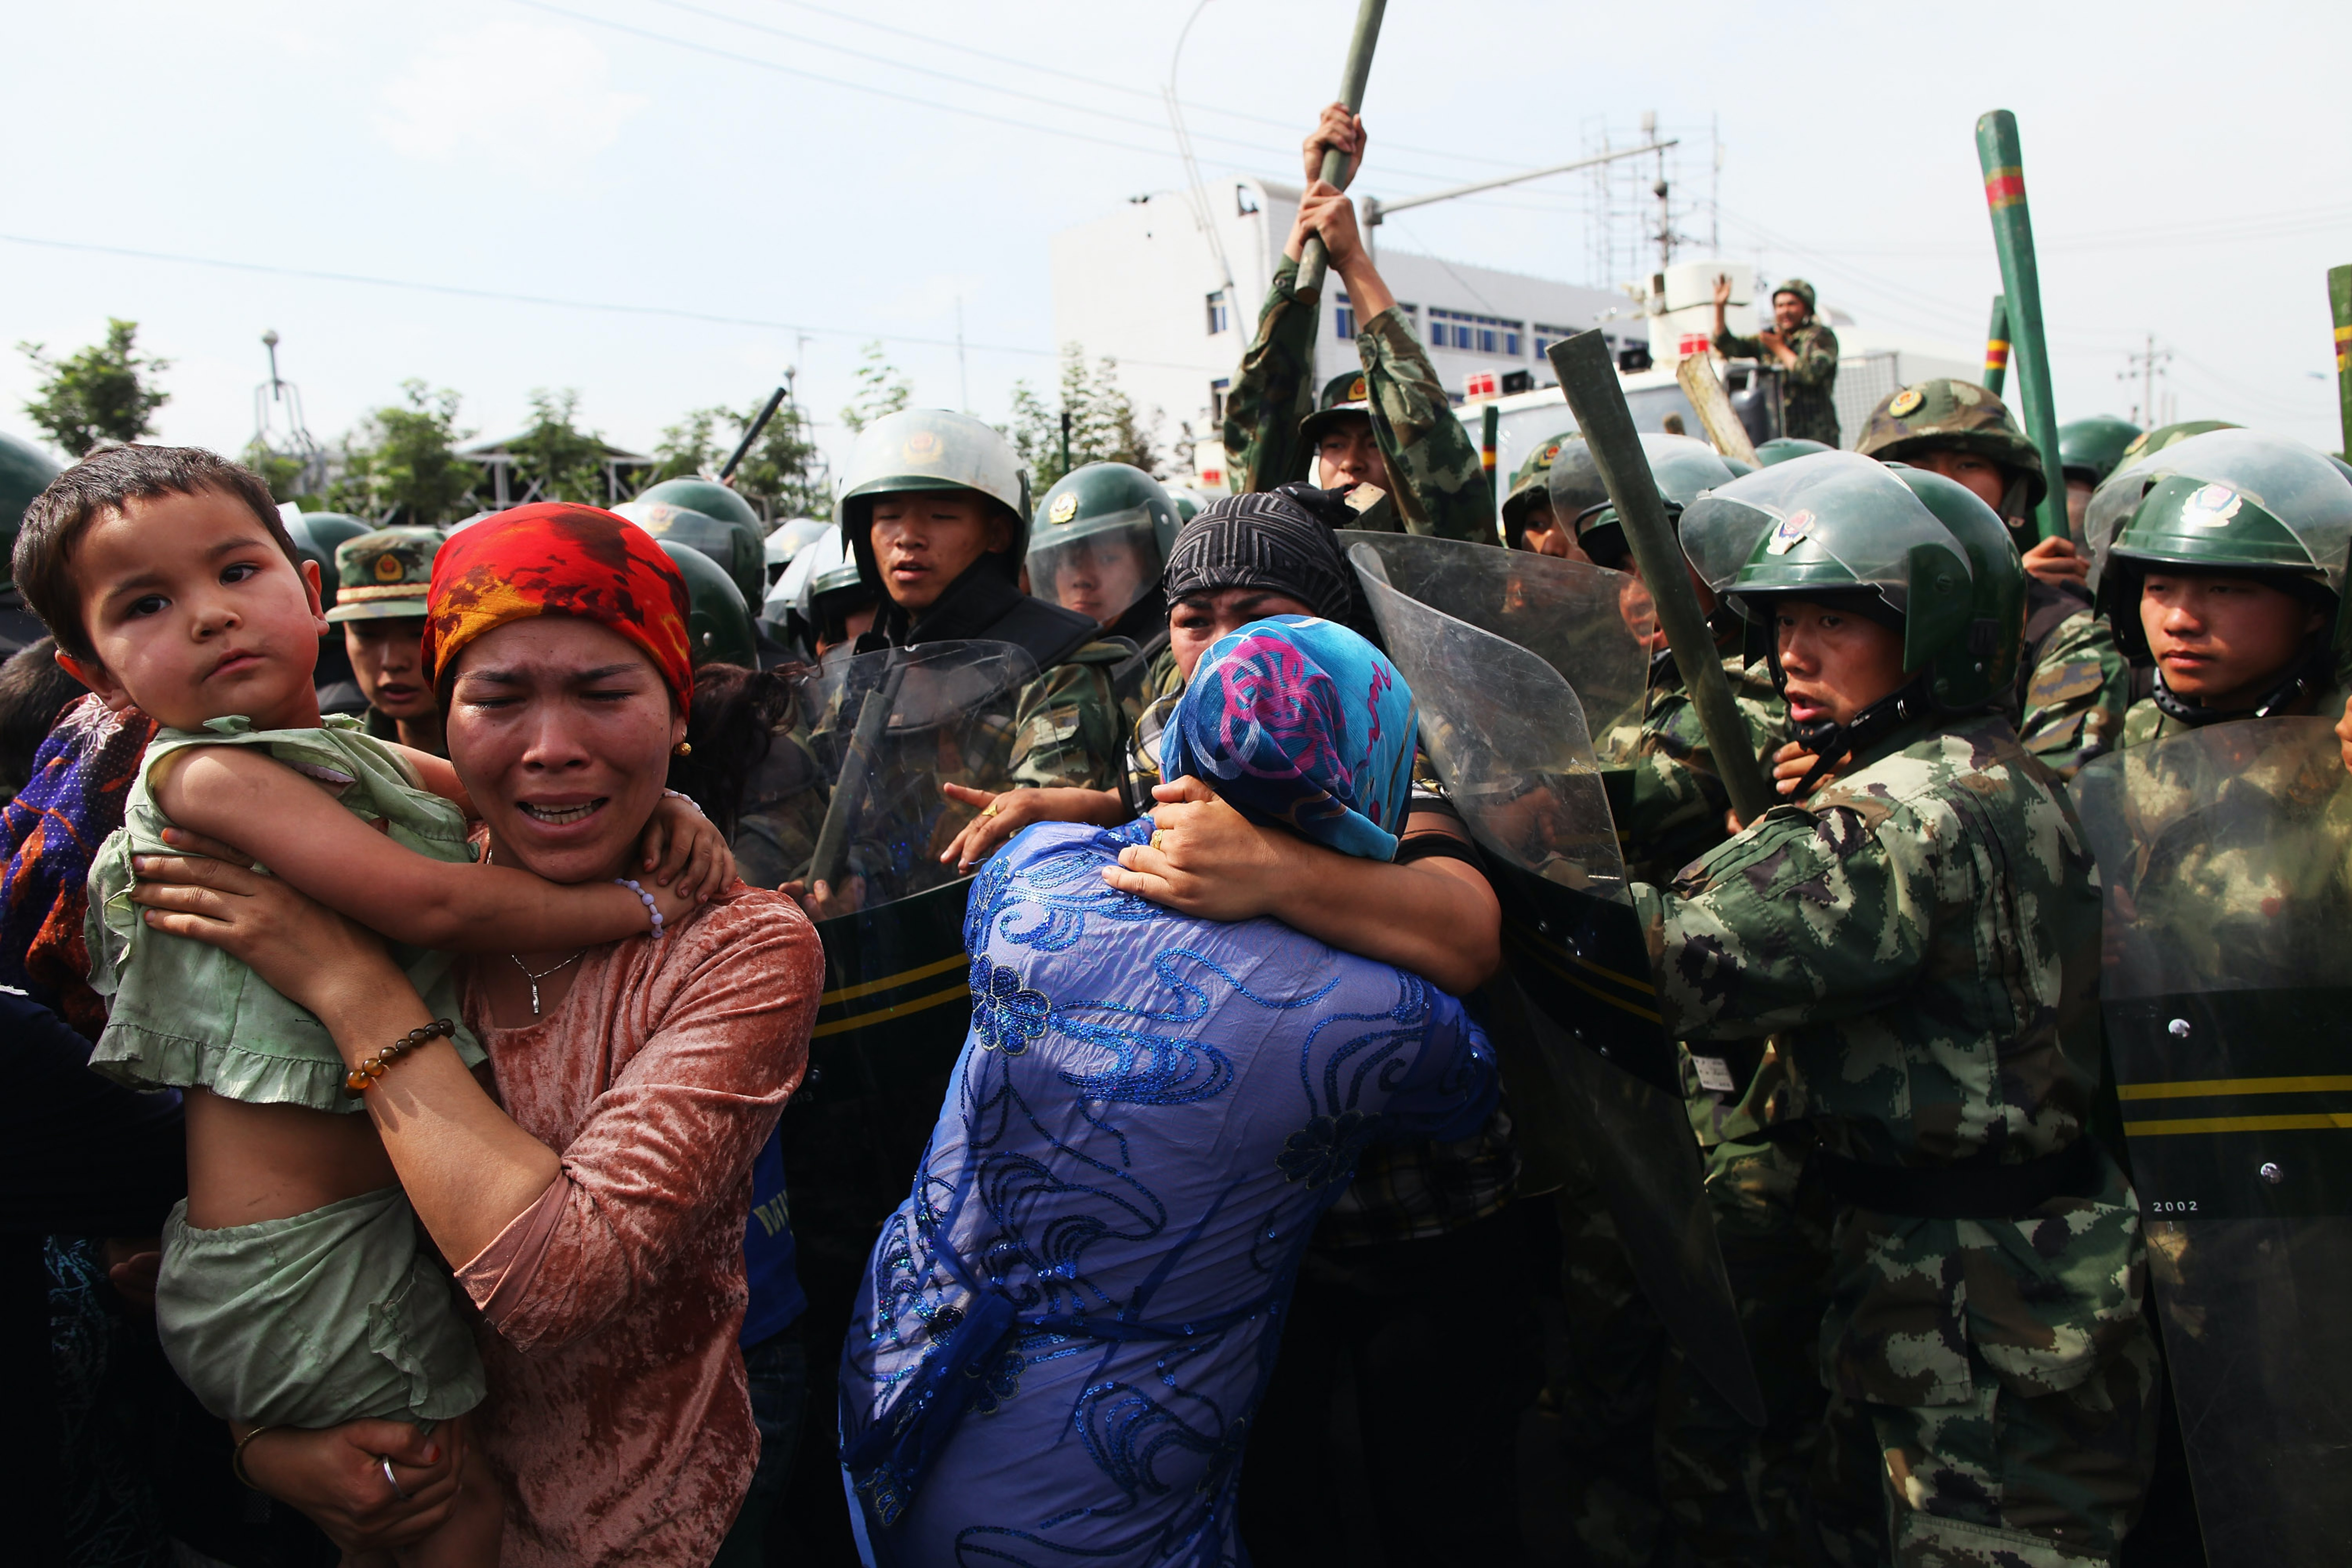 The Left's Deafening Silence on China's Ethnic Cleansing